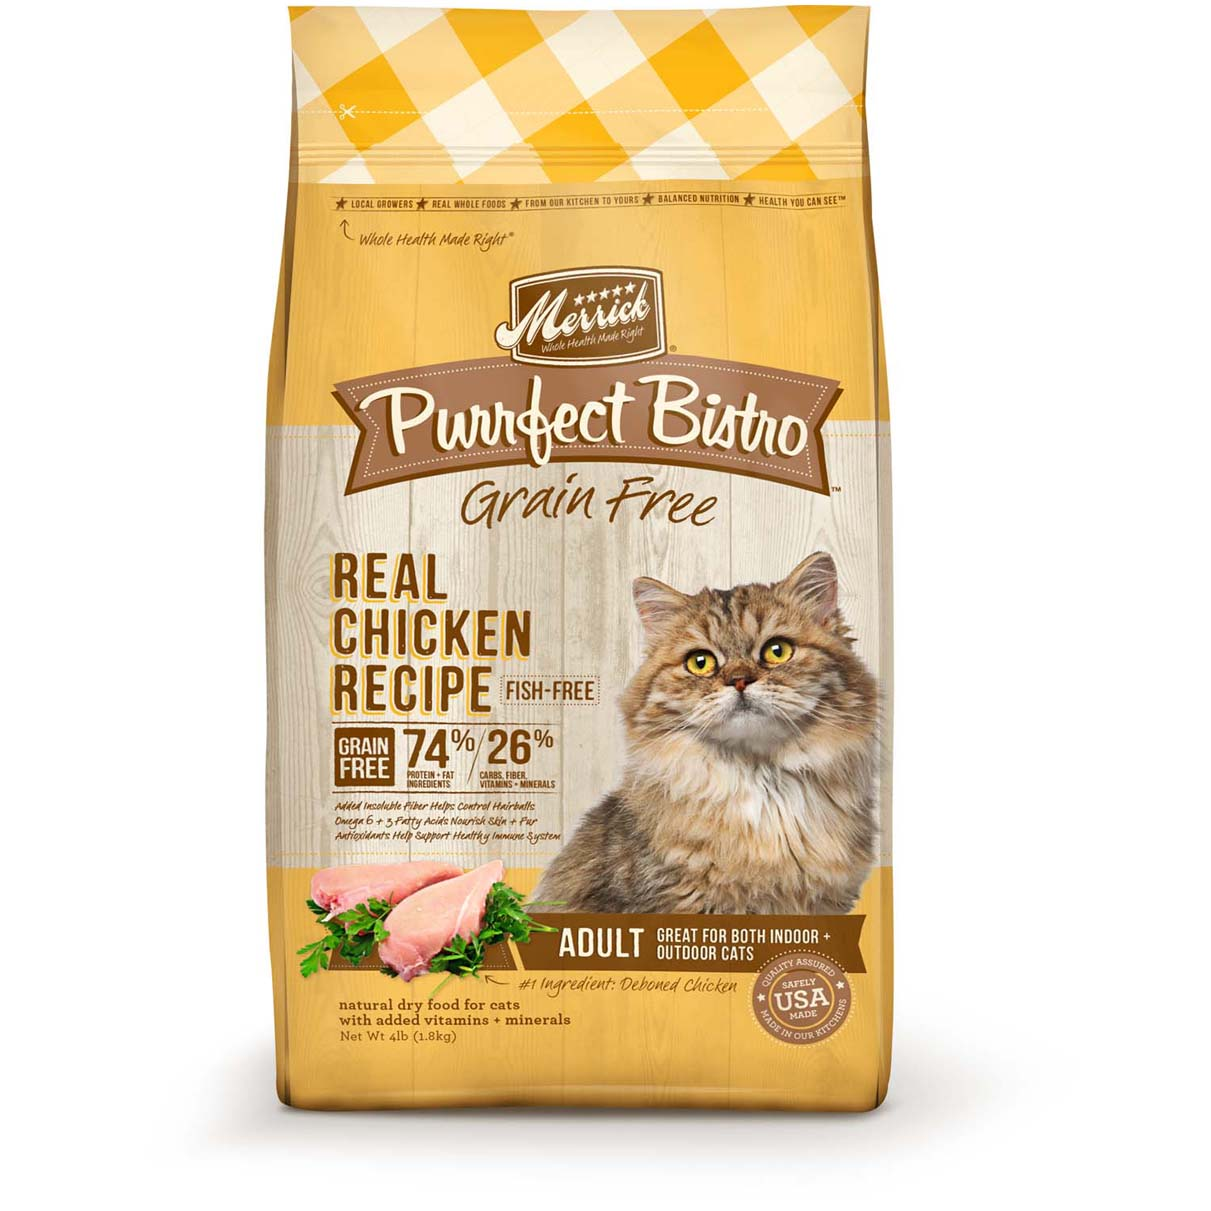 Merrick Purrfect Bistro Grain-Free Real Chicken Recipe Adult Dry Cat Food 12lbs